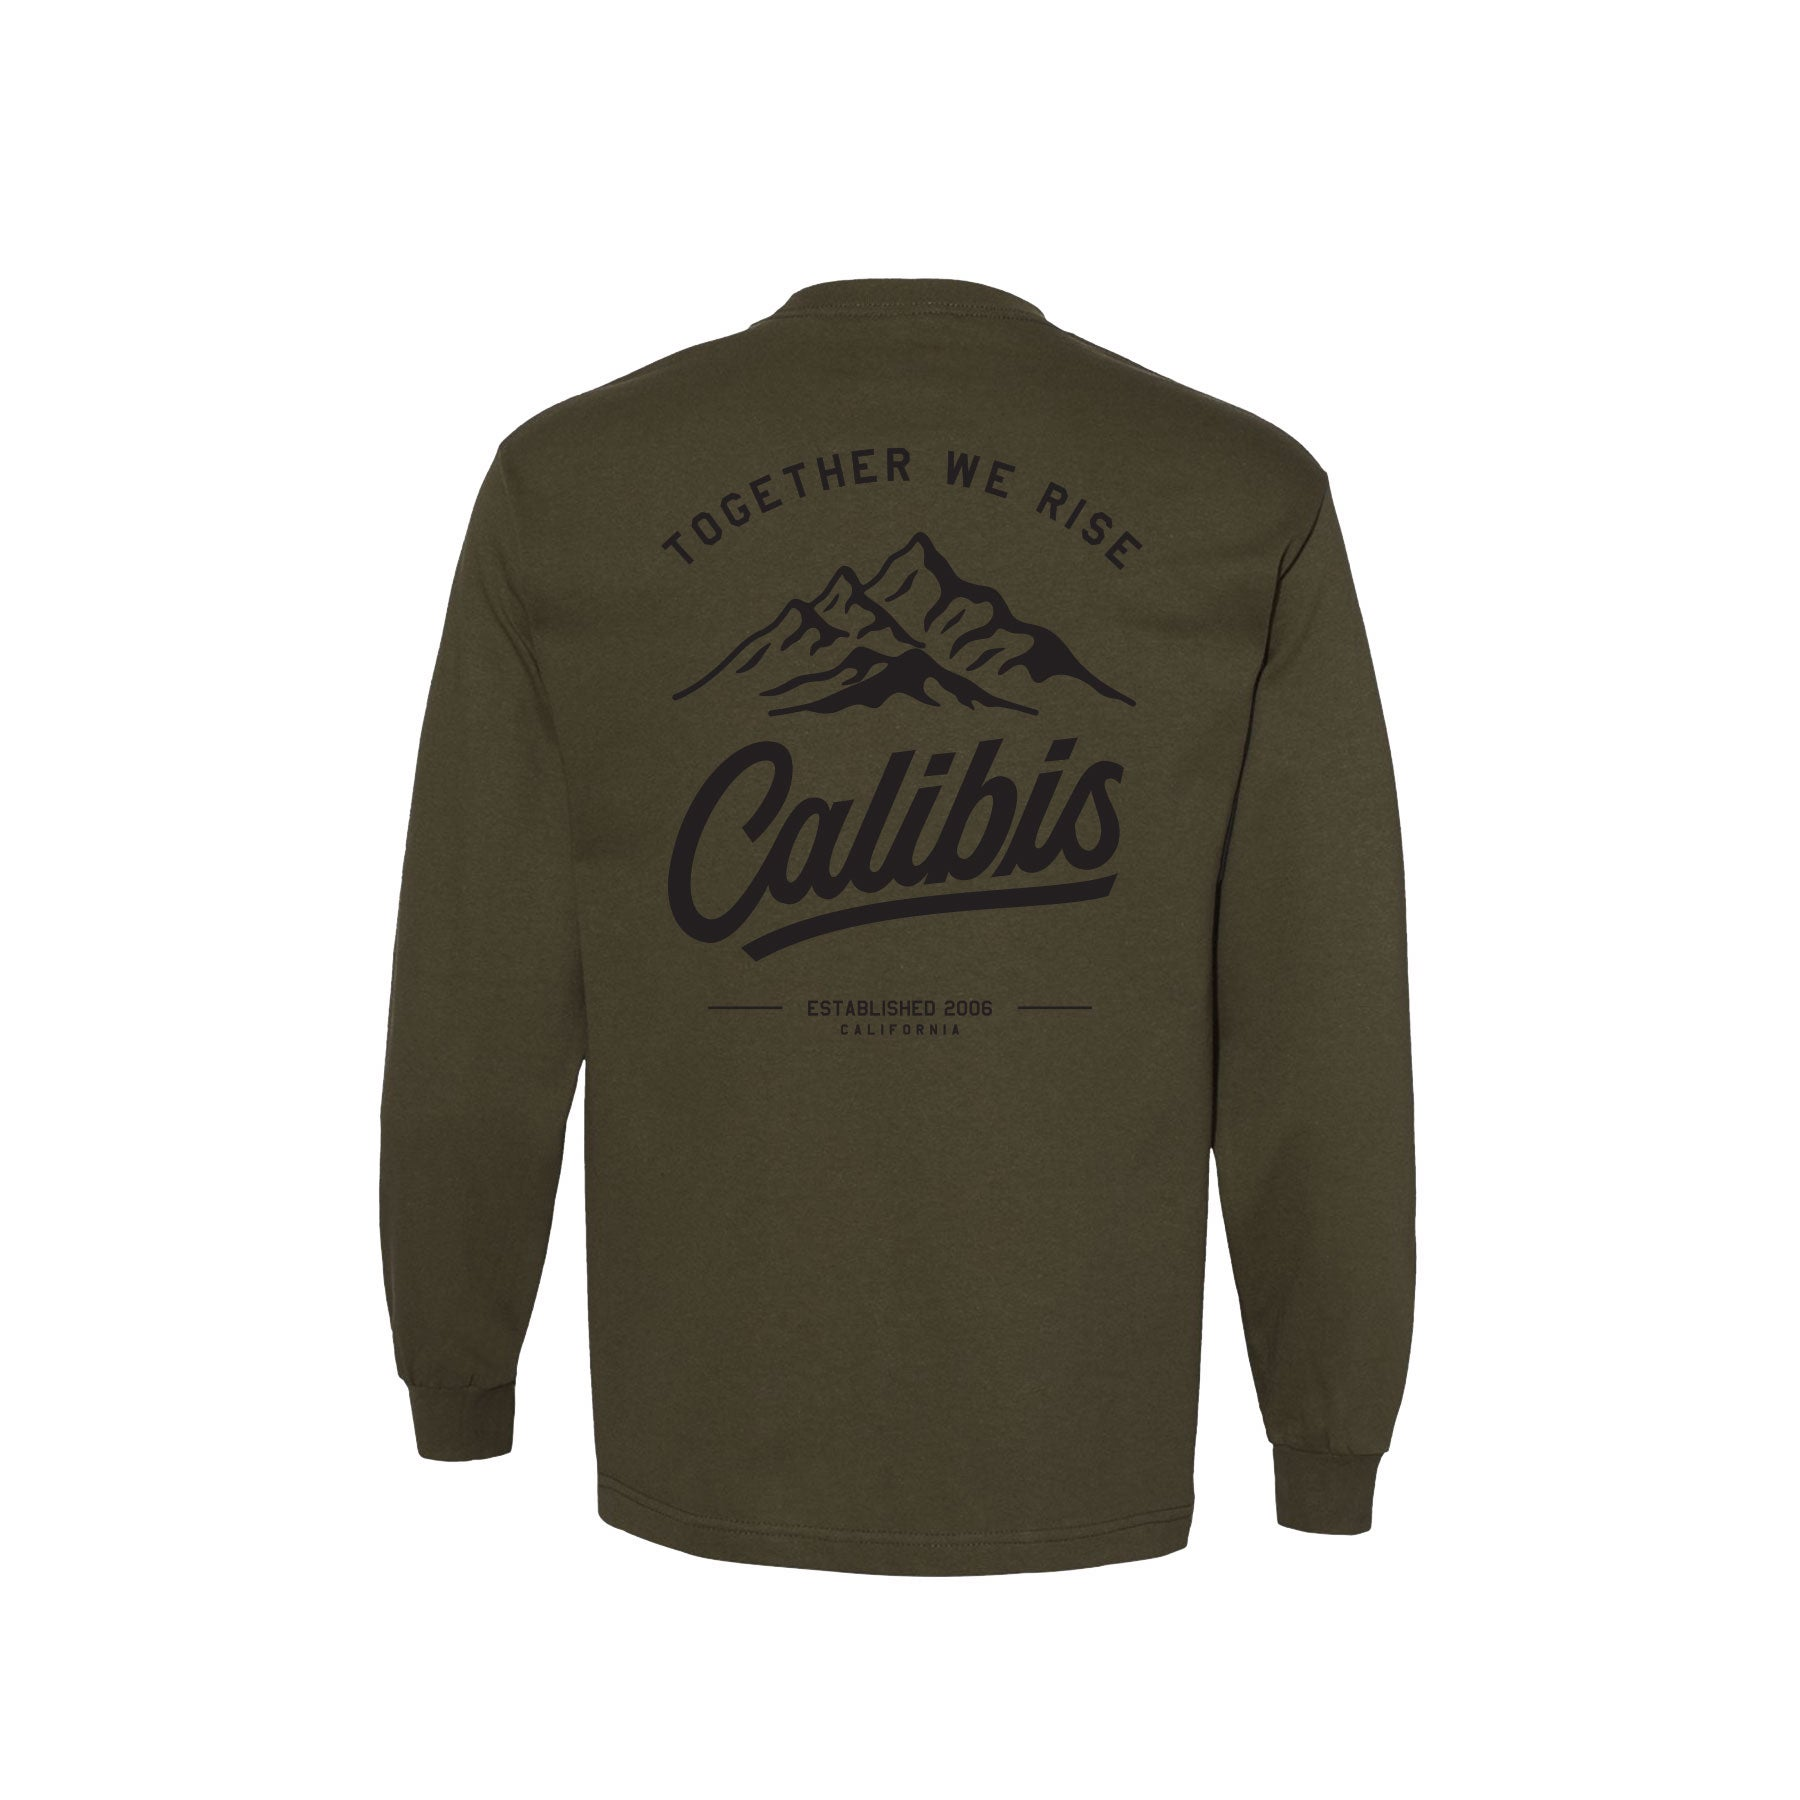 Together We Rise Long Sleeve by Calibis Clothing